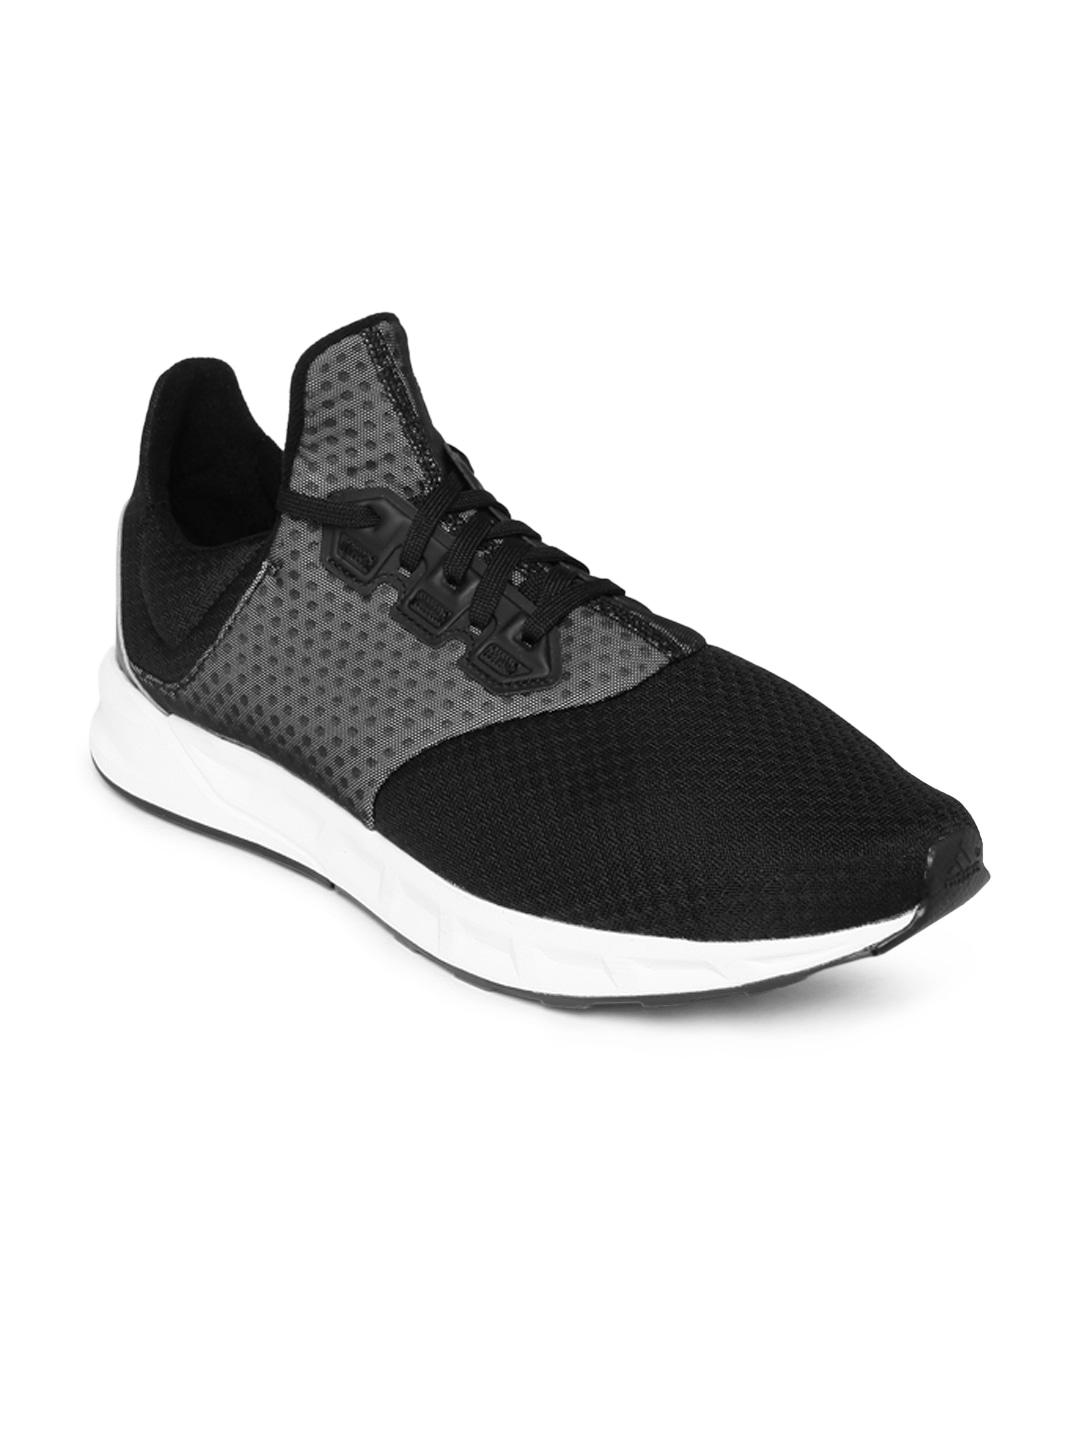 detailed look 3e73f 7ce09 ... coupon adidas men black grey falcon elite 5 running shoes price in  india d1be3 9907c